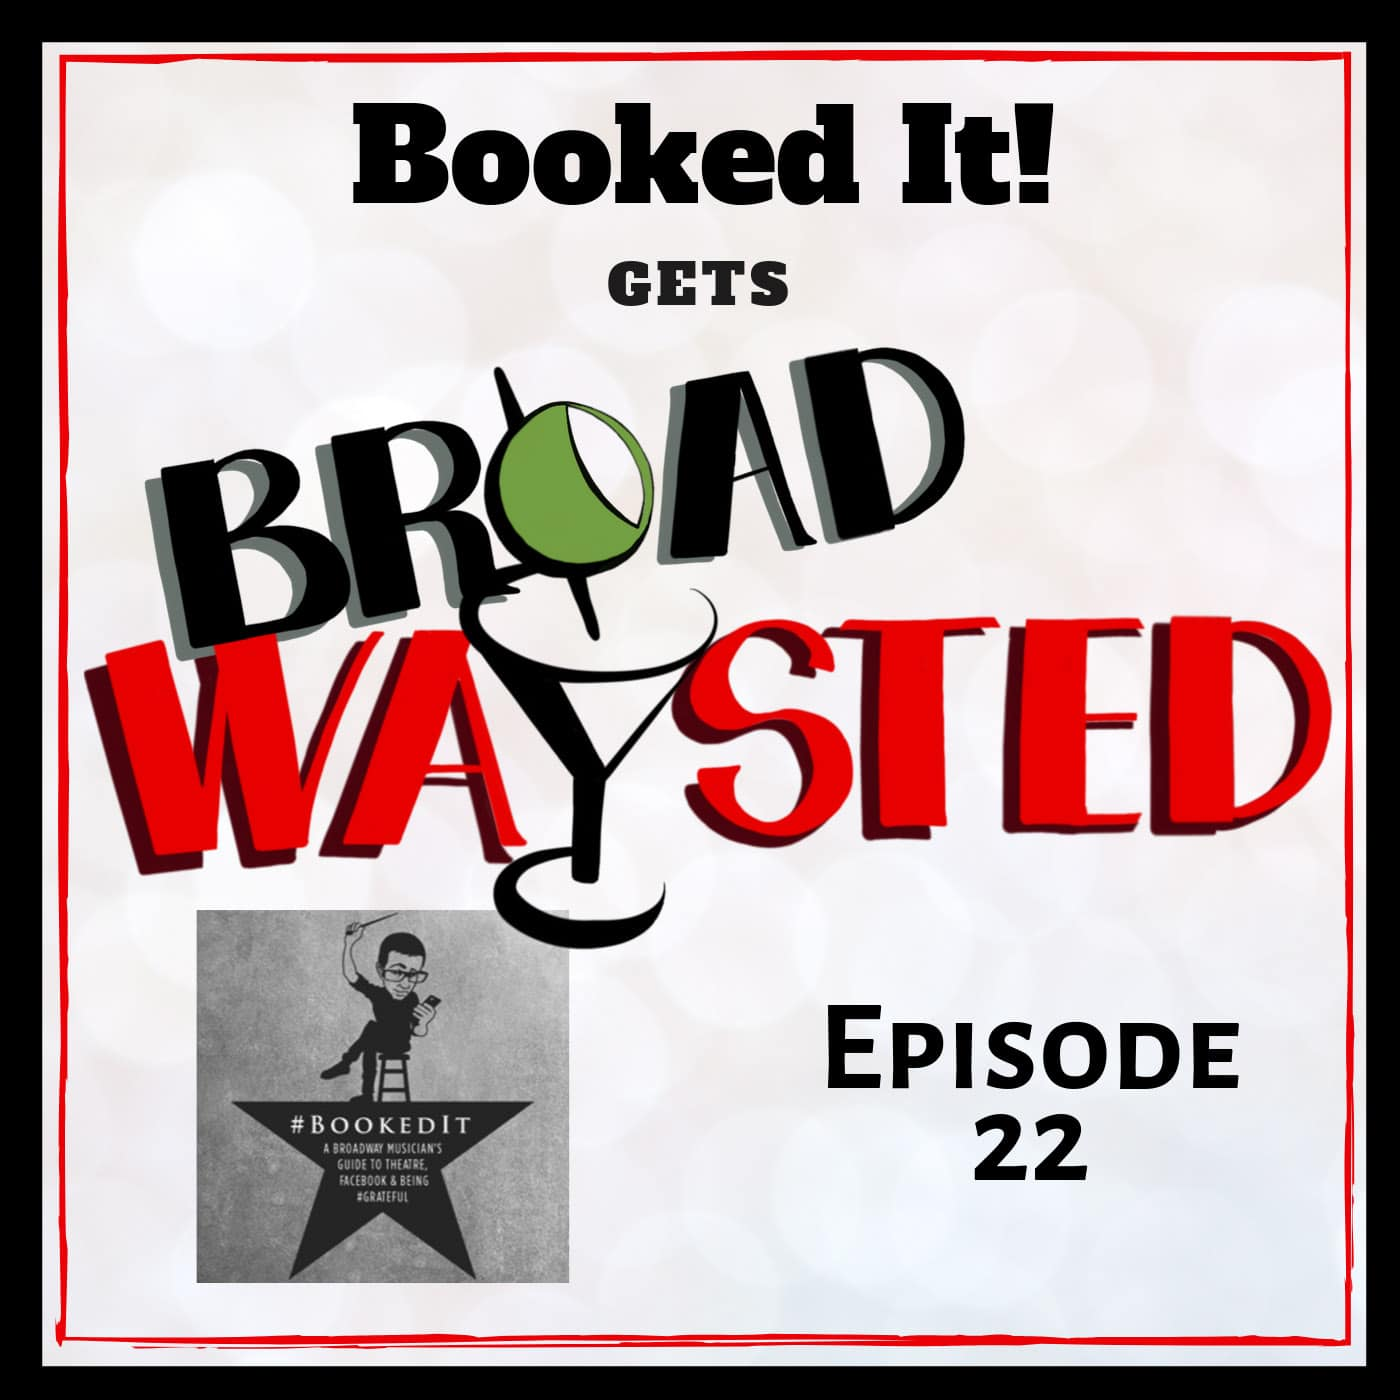 Broadwaysted Ep 22 Booked It!